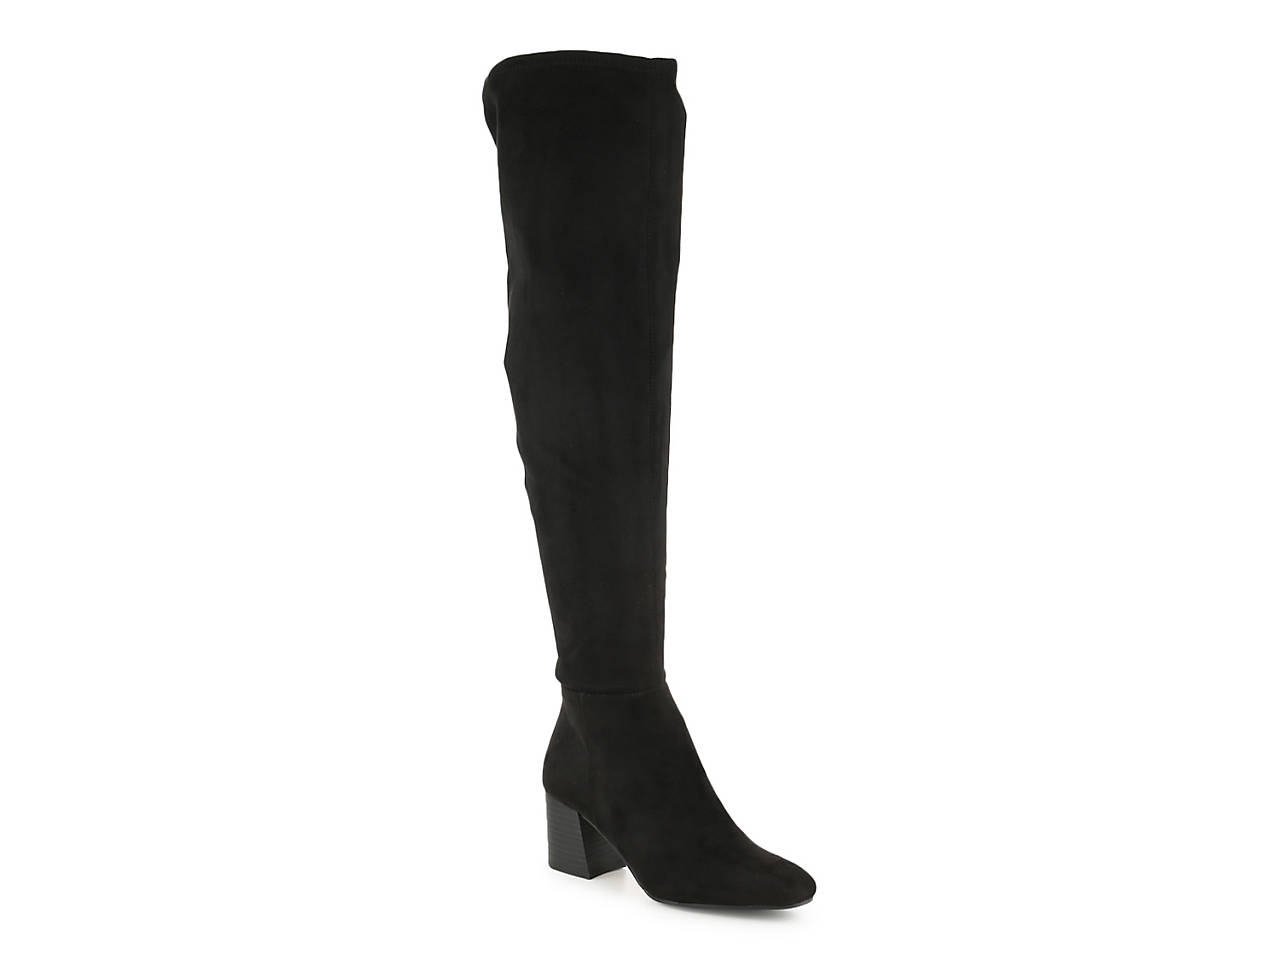 881e170ed9e Vince Camuto Kantha Over The Knee Boot Women s Shoes